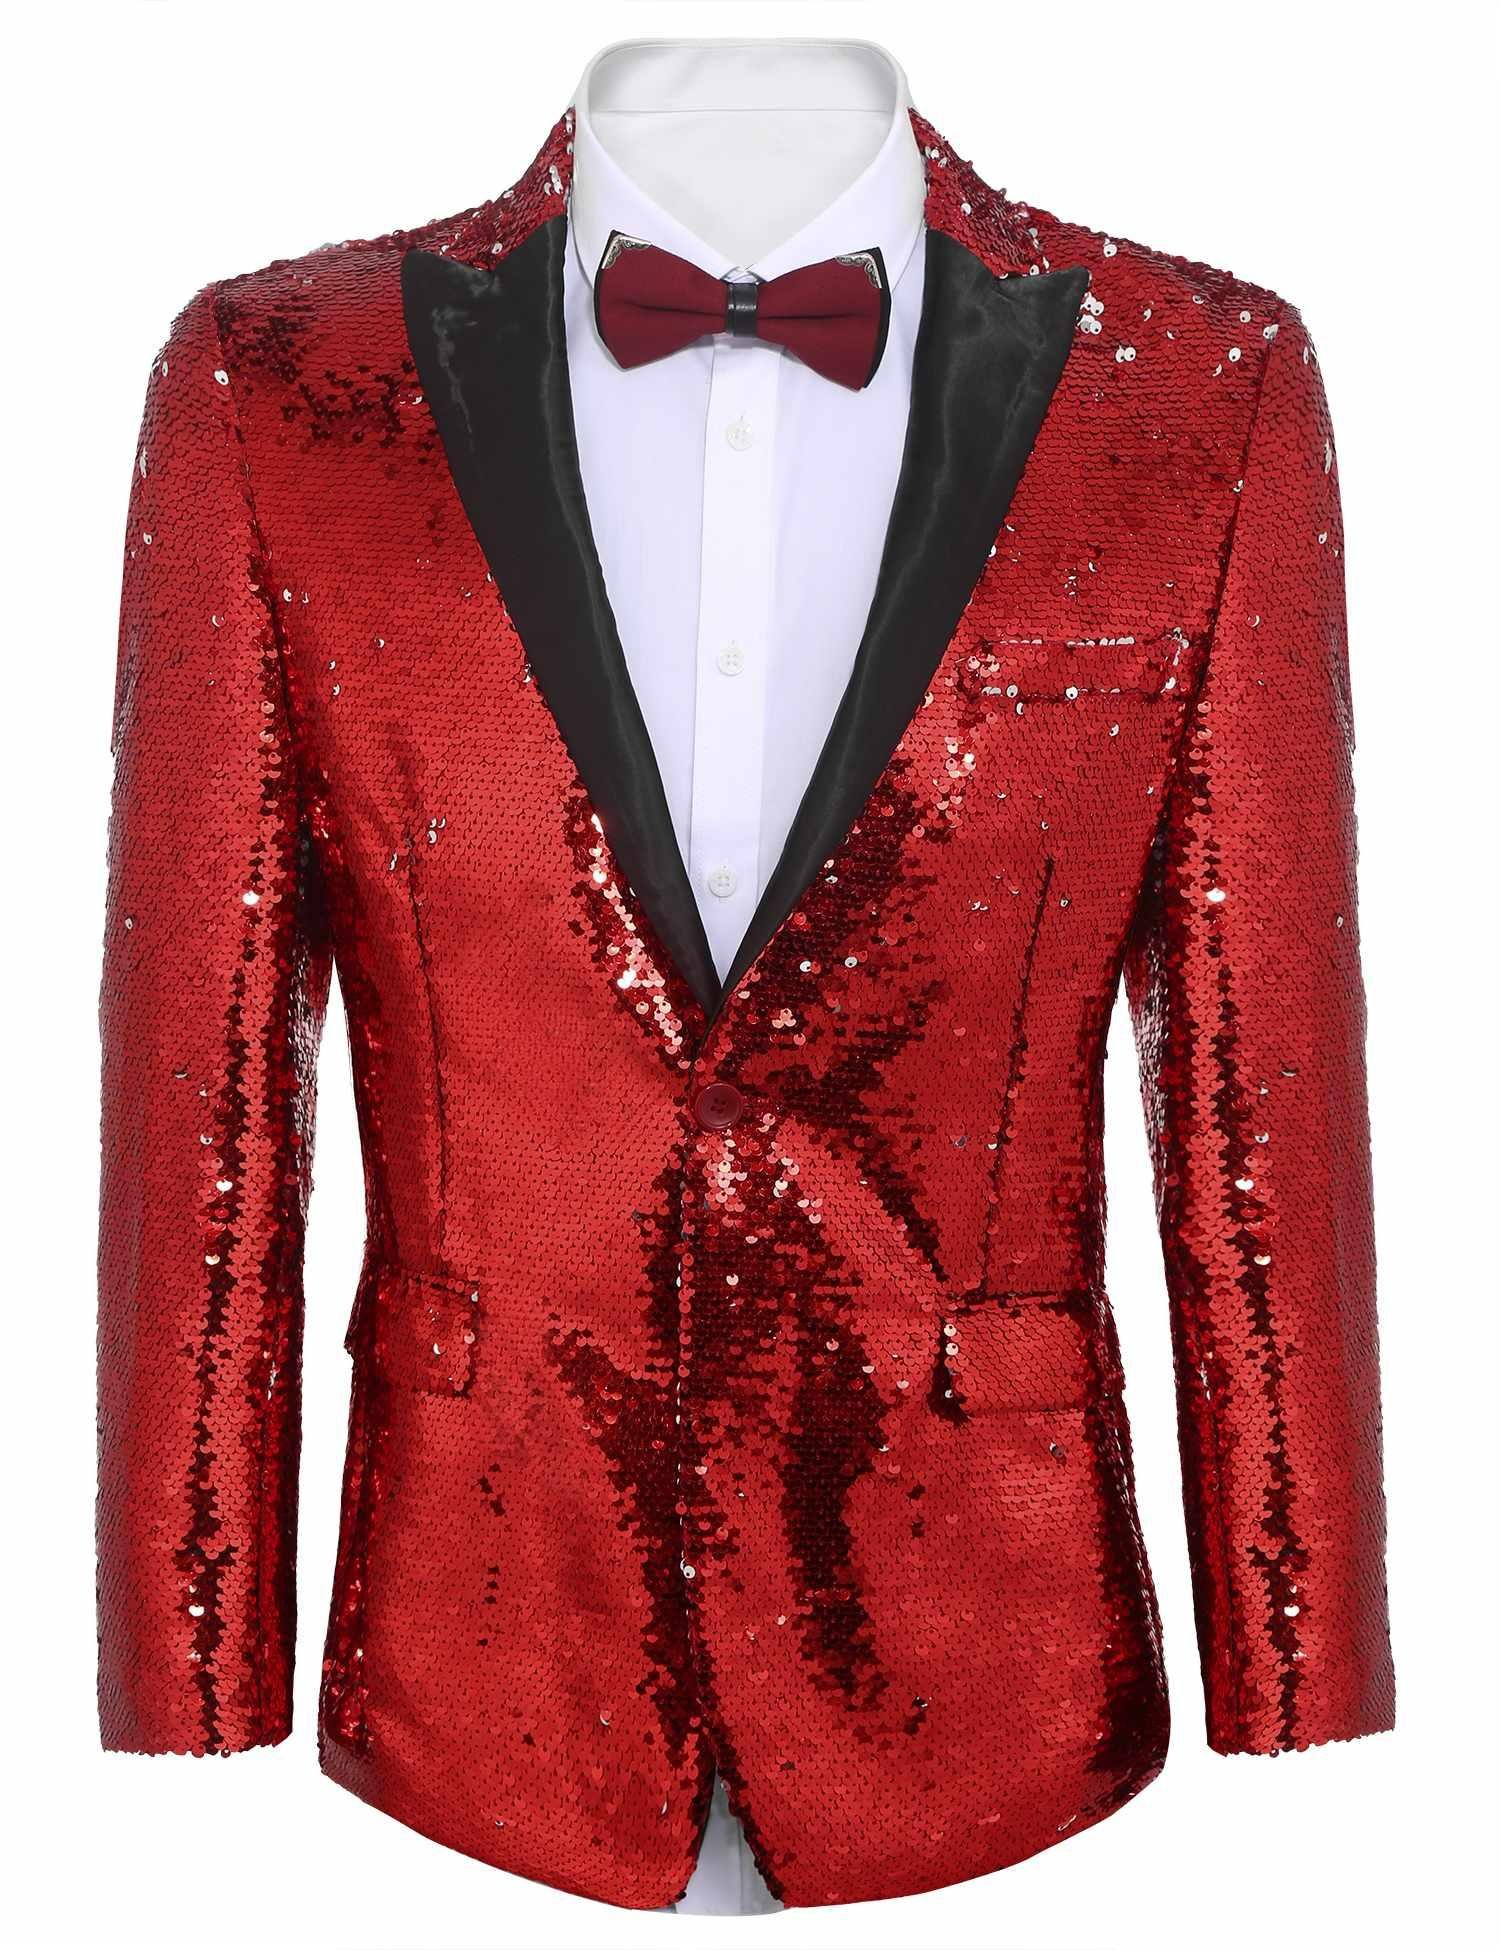 COOFANDY Shiny Sequins Suit Jacket Blazer One Button Tuxedo for Party,Wedding,Banquet,Christmas,Nightclub,Red,X-Large by COOFANDY